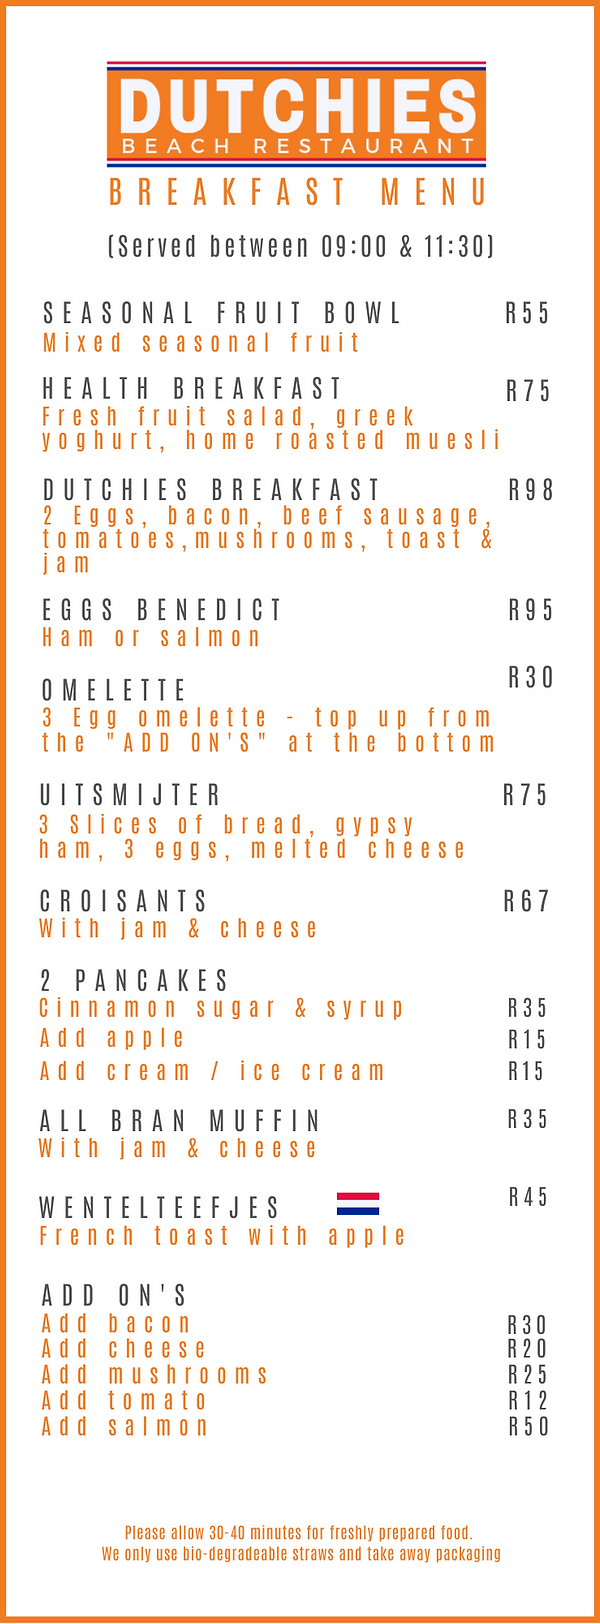 DUTCHIES BFAST MENU.png